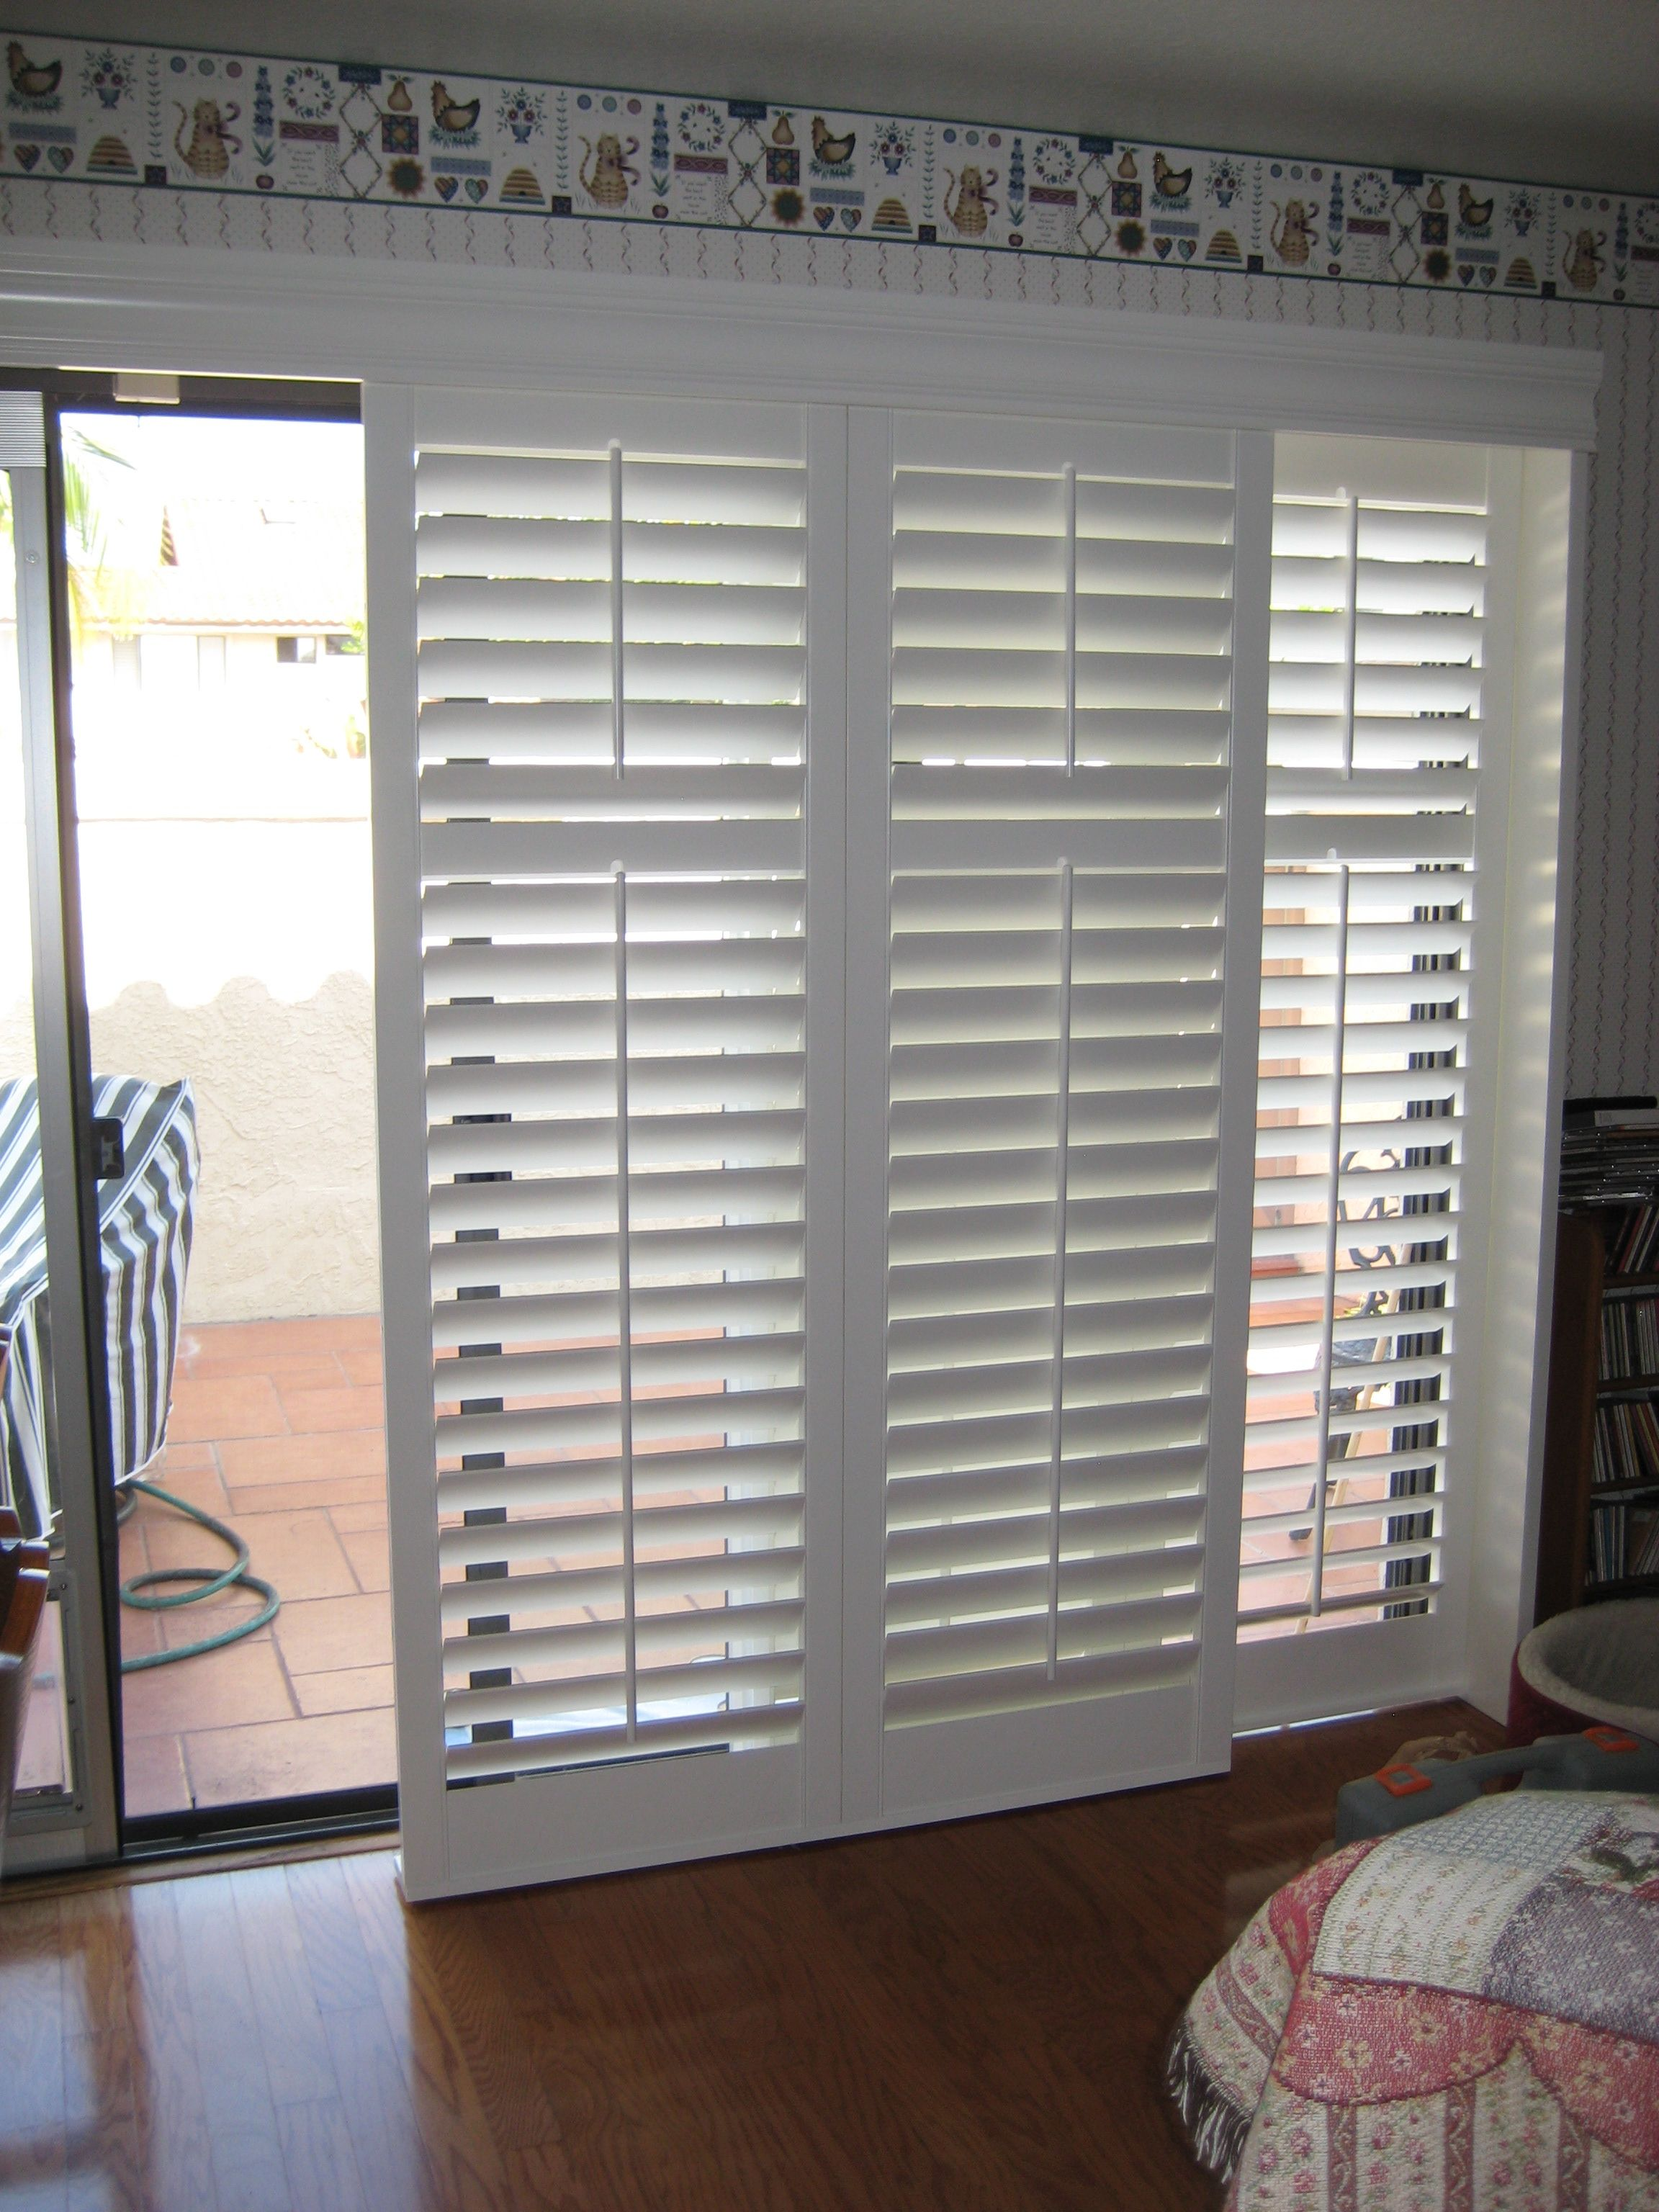 Security shutters for sliding glass doors togethersandia